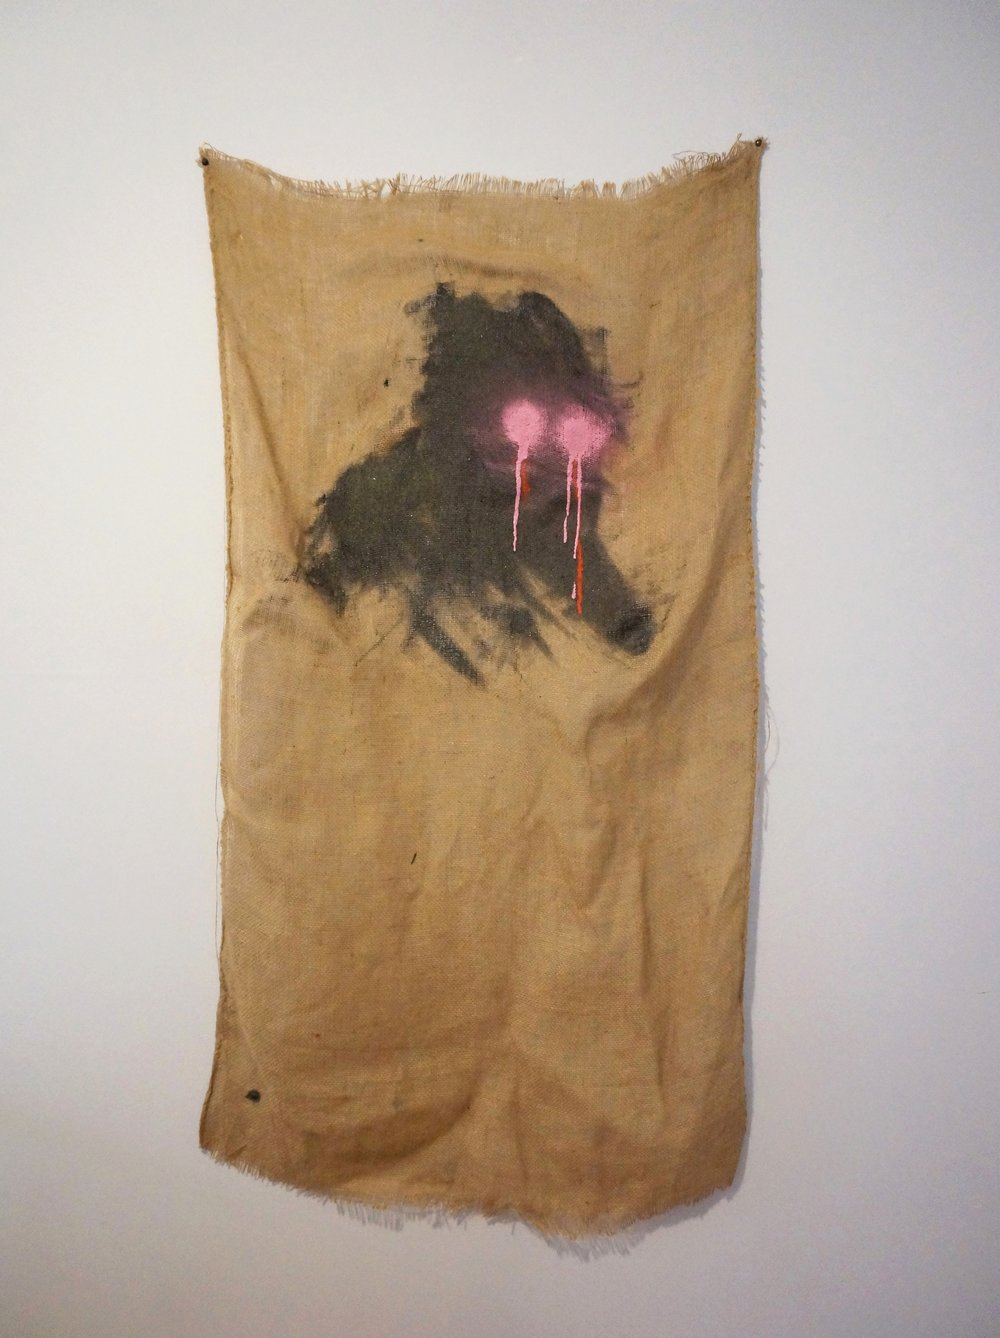 Almost Human, 2017, burlap, spray paint, resin, sand